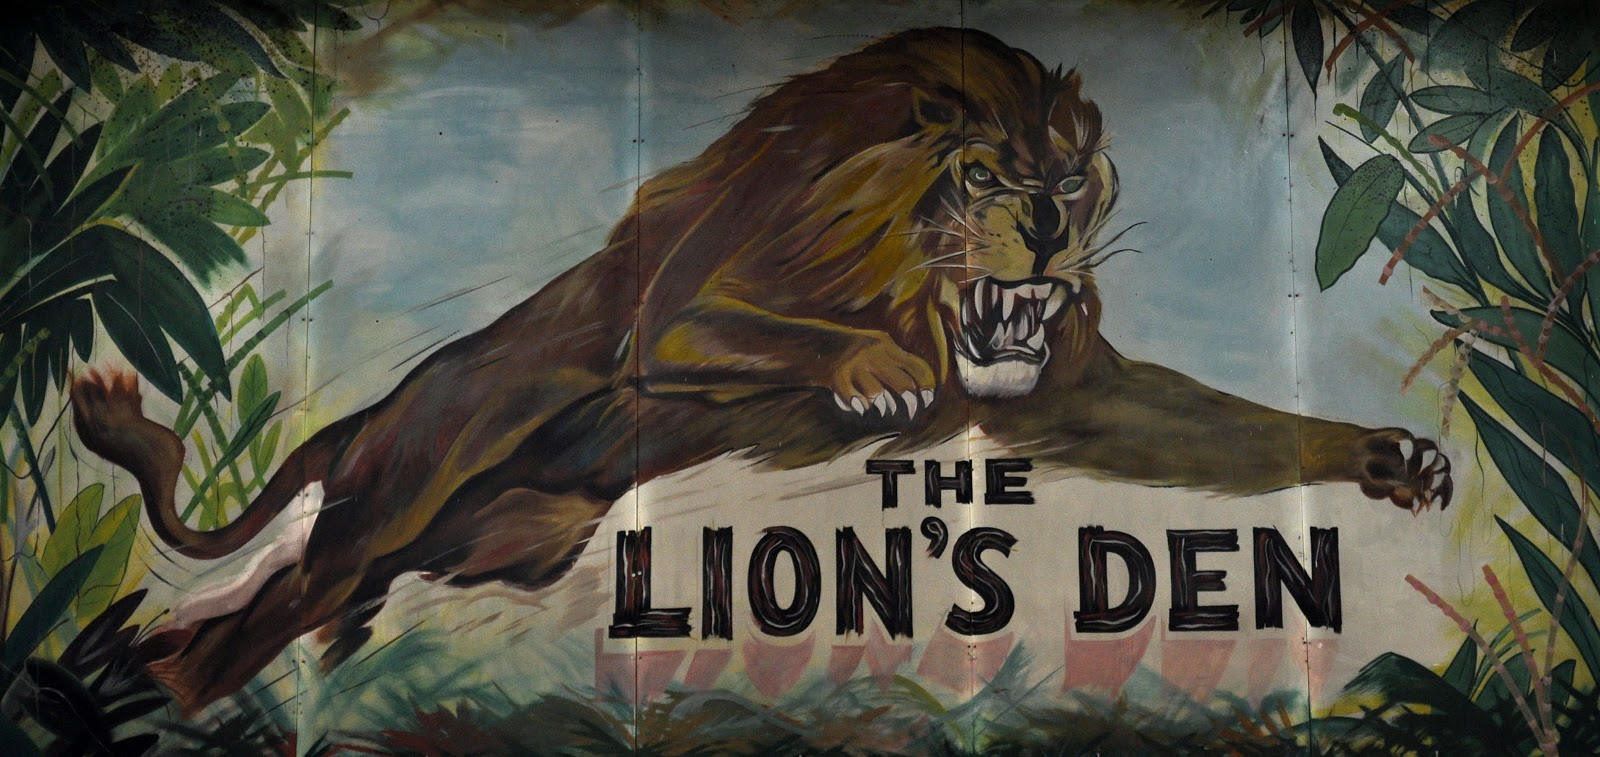 New Richmond School news: Lion's Den sign to be retired Feb. 8